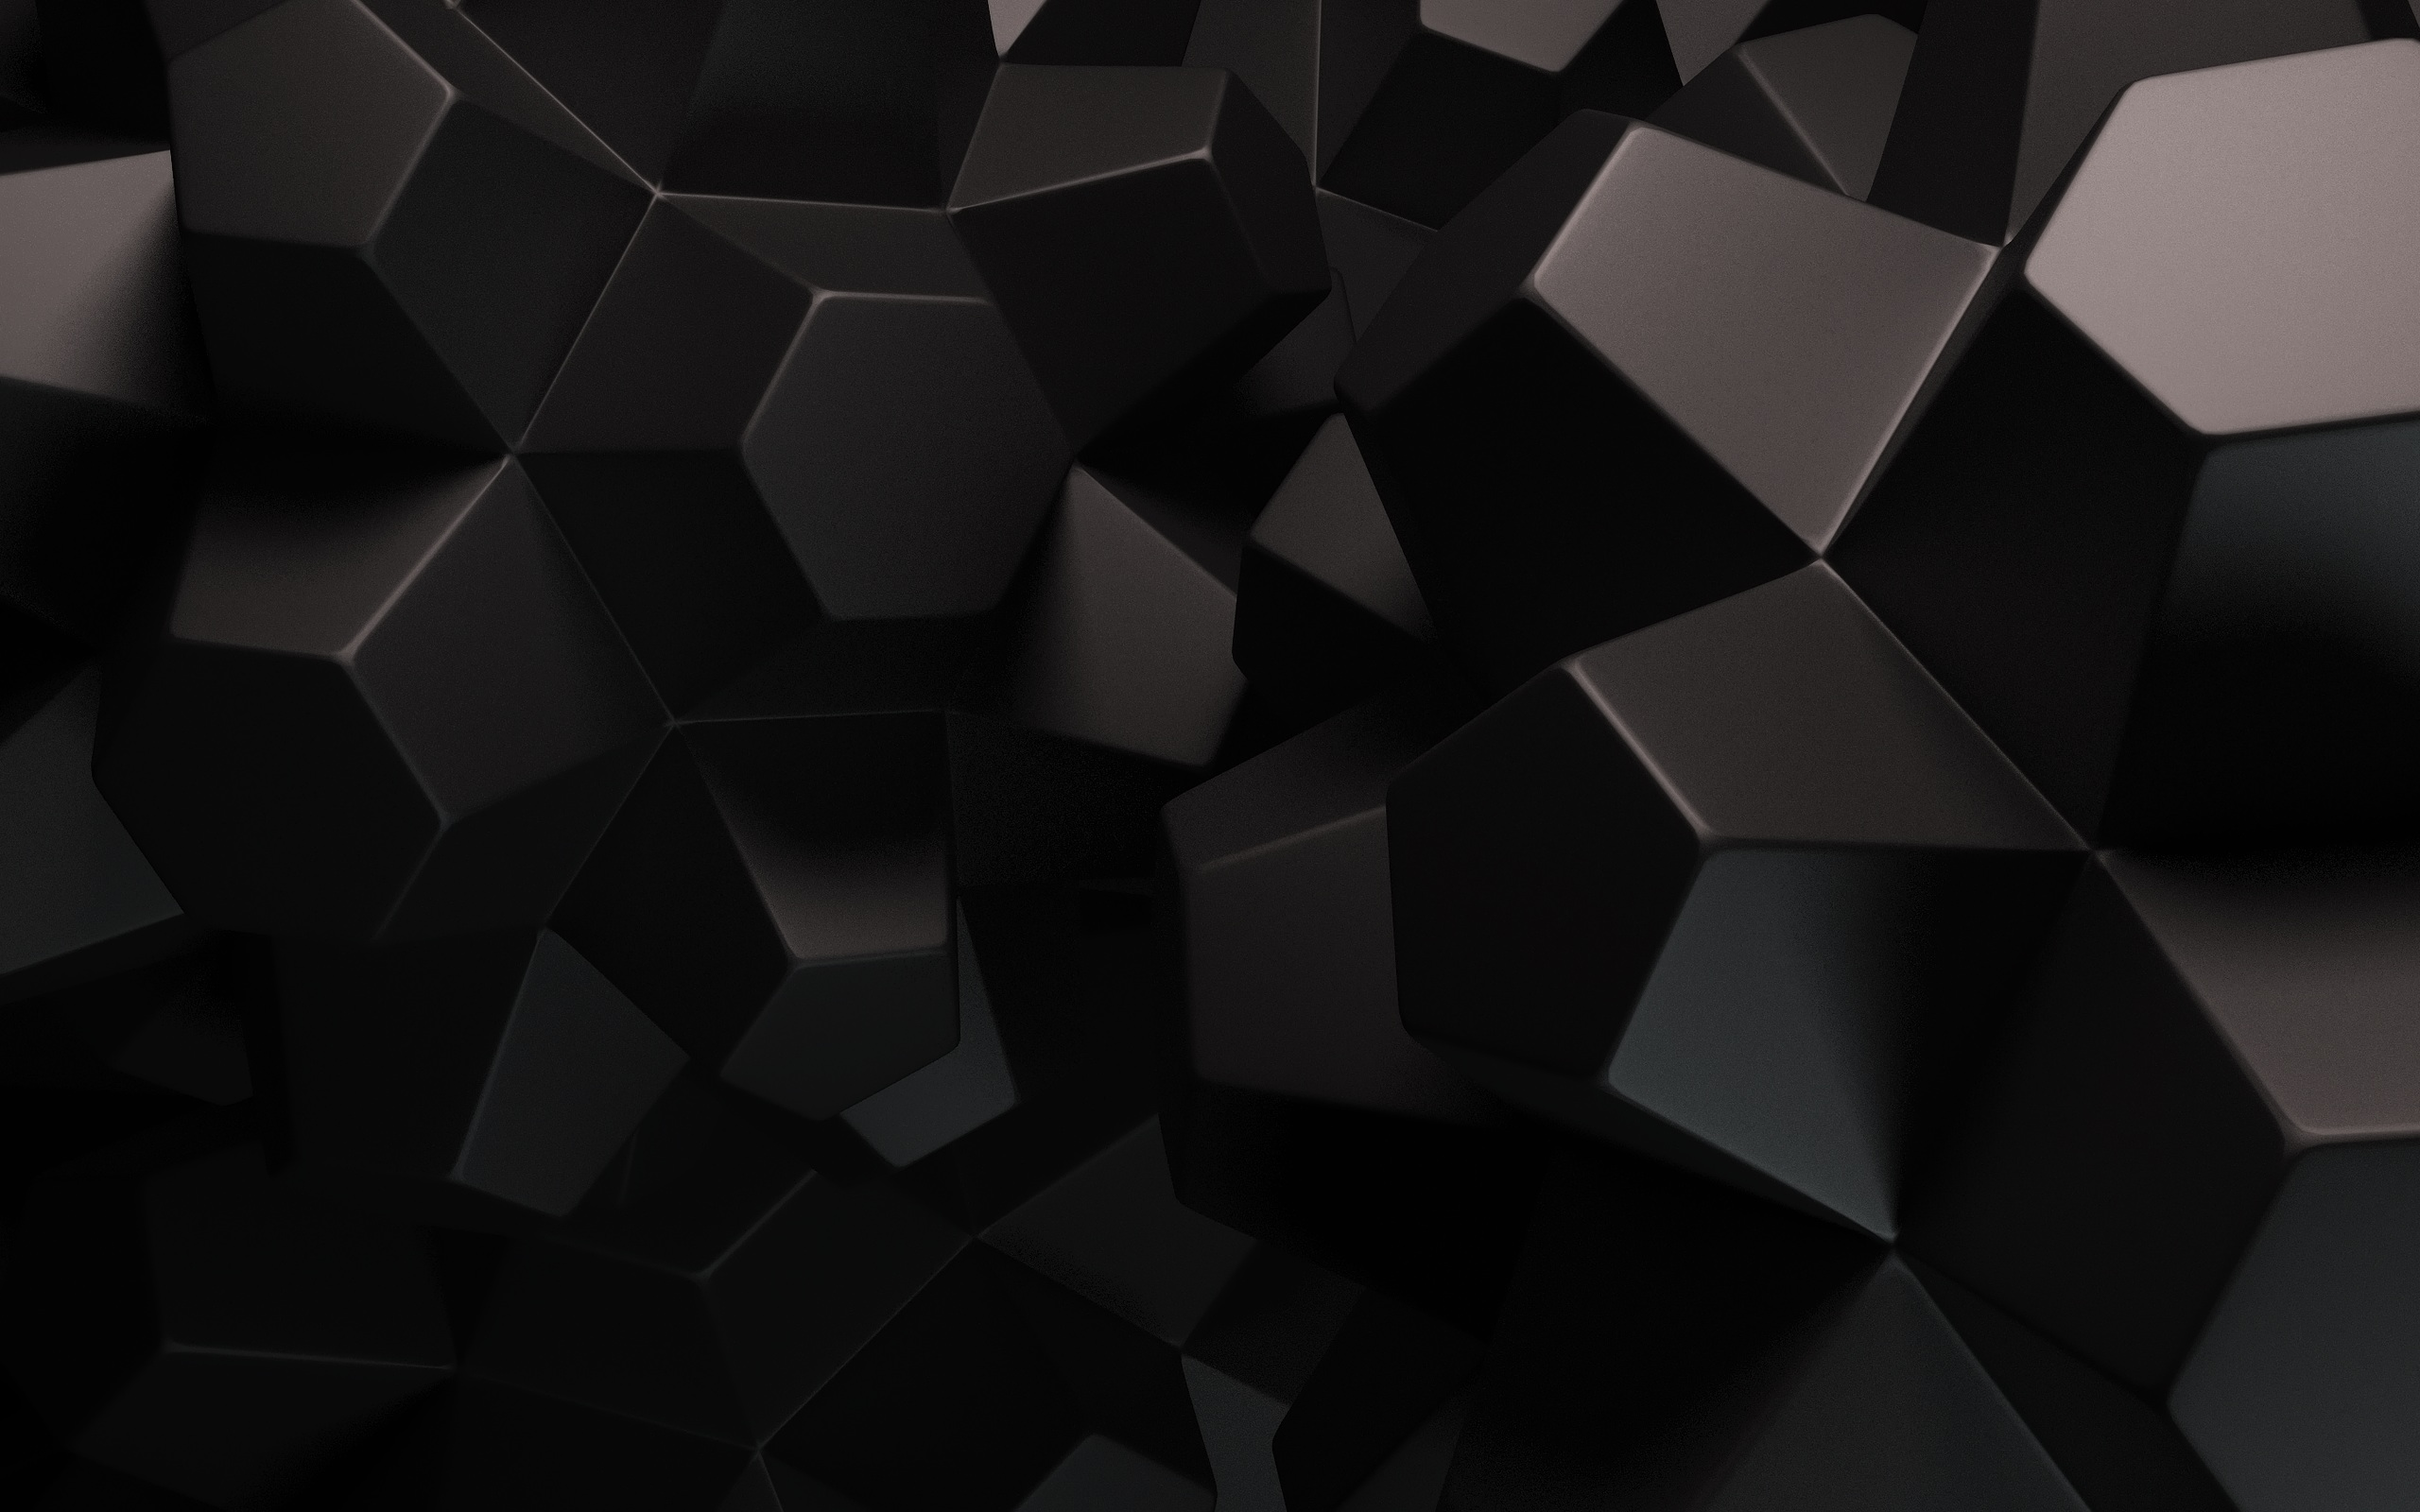 Abstract Black Shapes Wallpapers Abstract Black Shapes Stock Photos